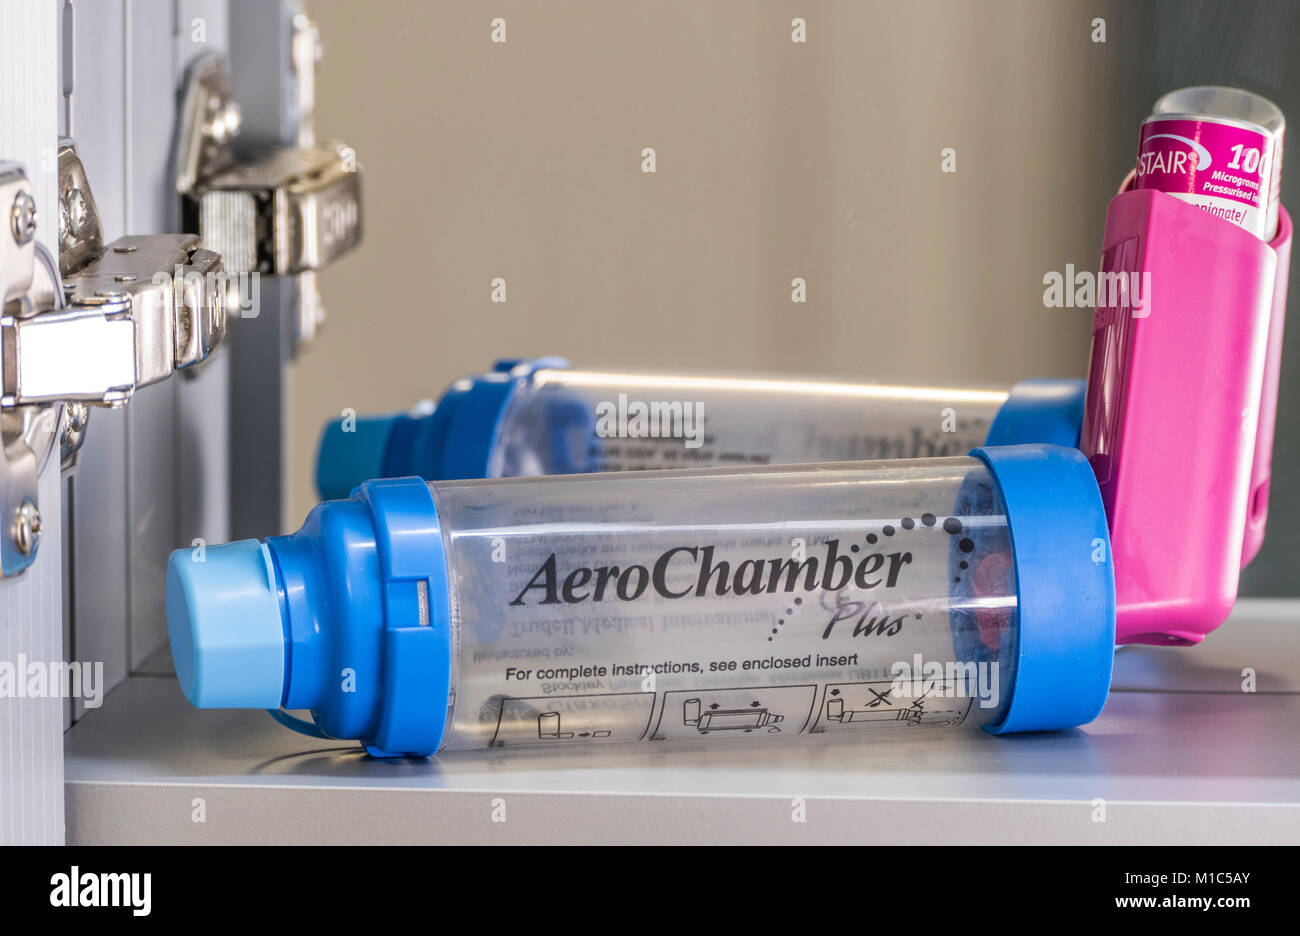 An AeroChamber Plus inhaler / puffer in a bathroom cabinet, ready to deliver a metered dose of asthma medication - Stock Image